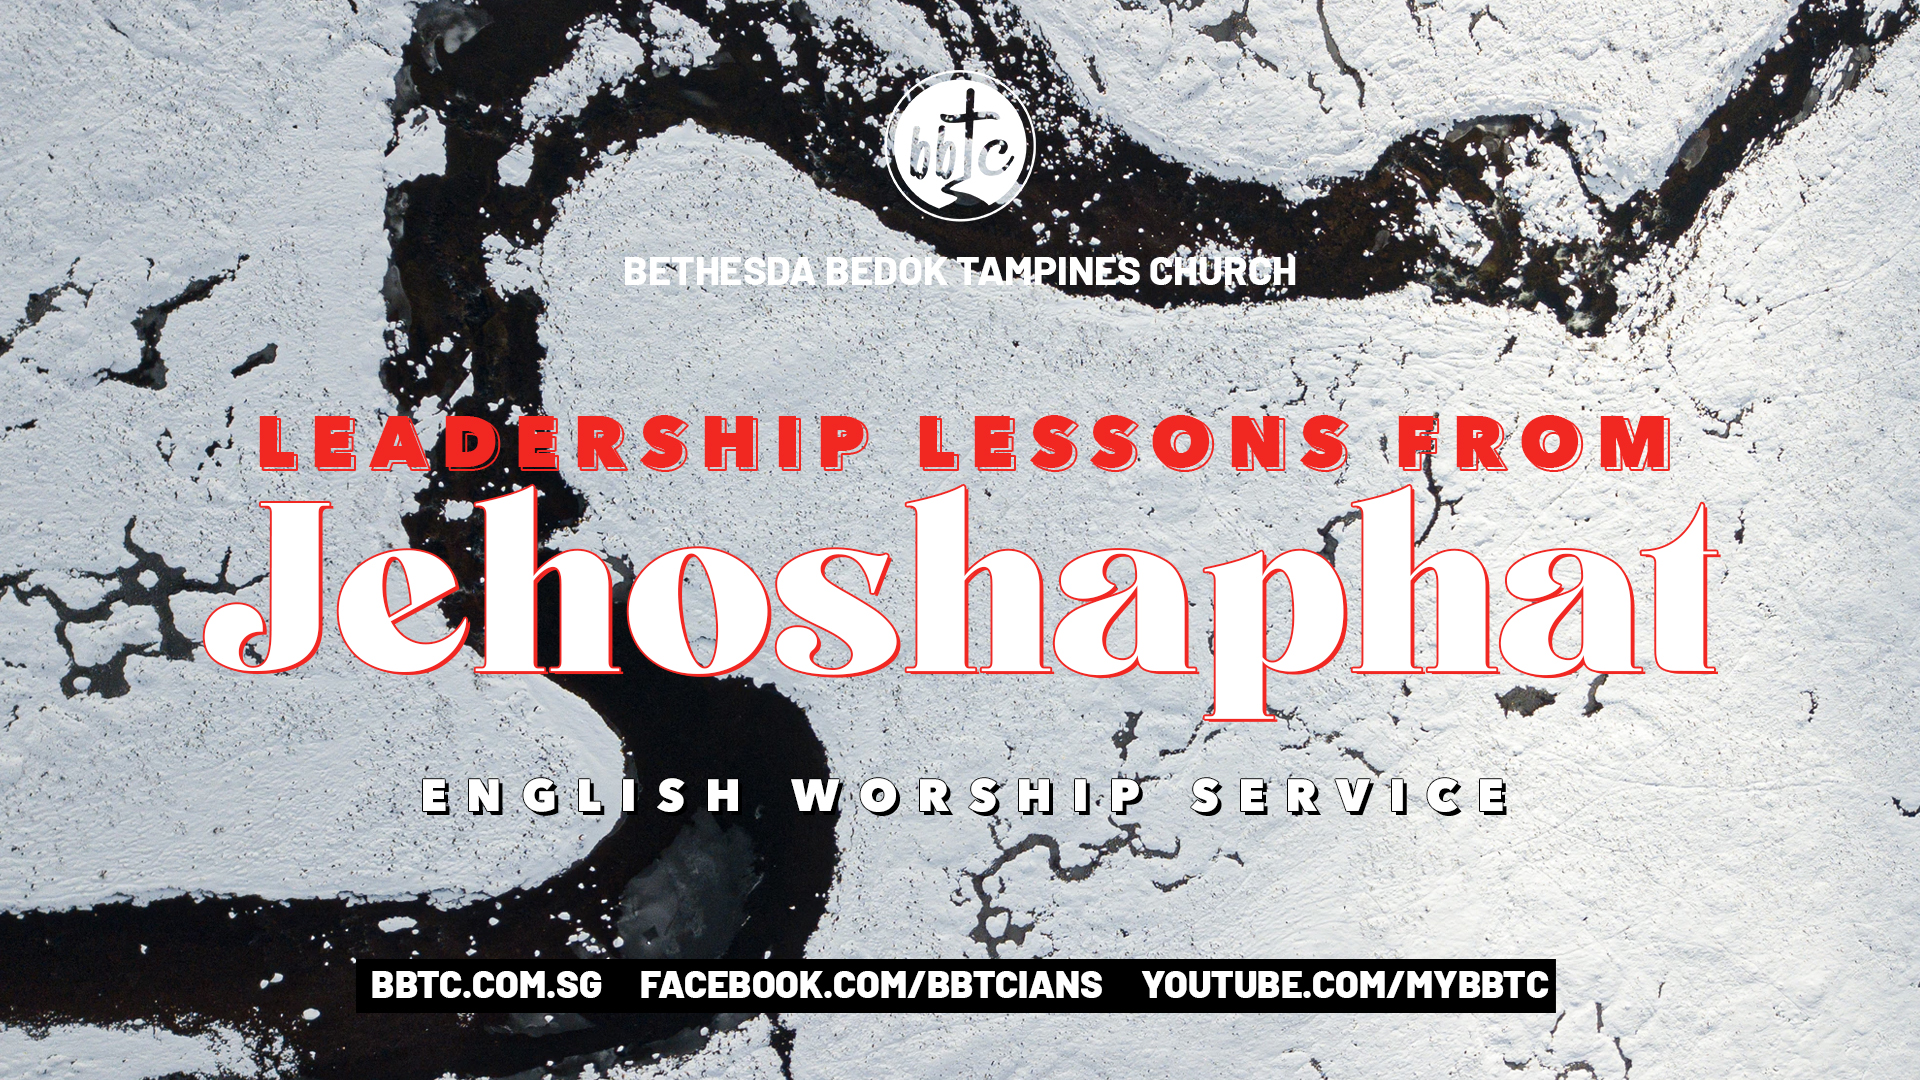 Leadership Lessons  from Jehoshaphat